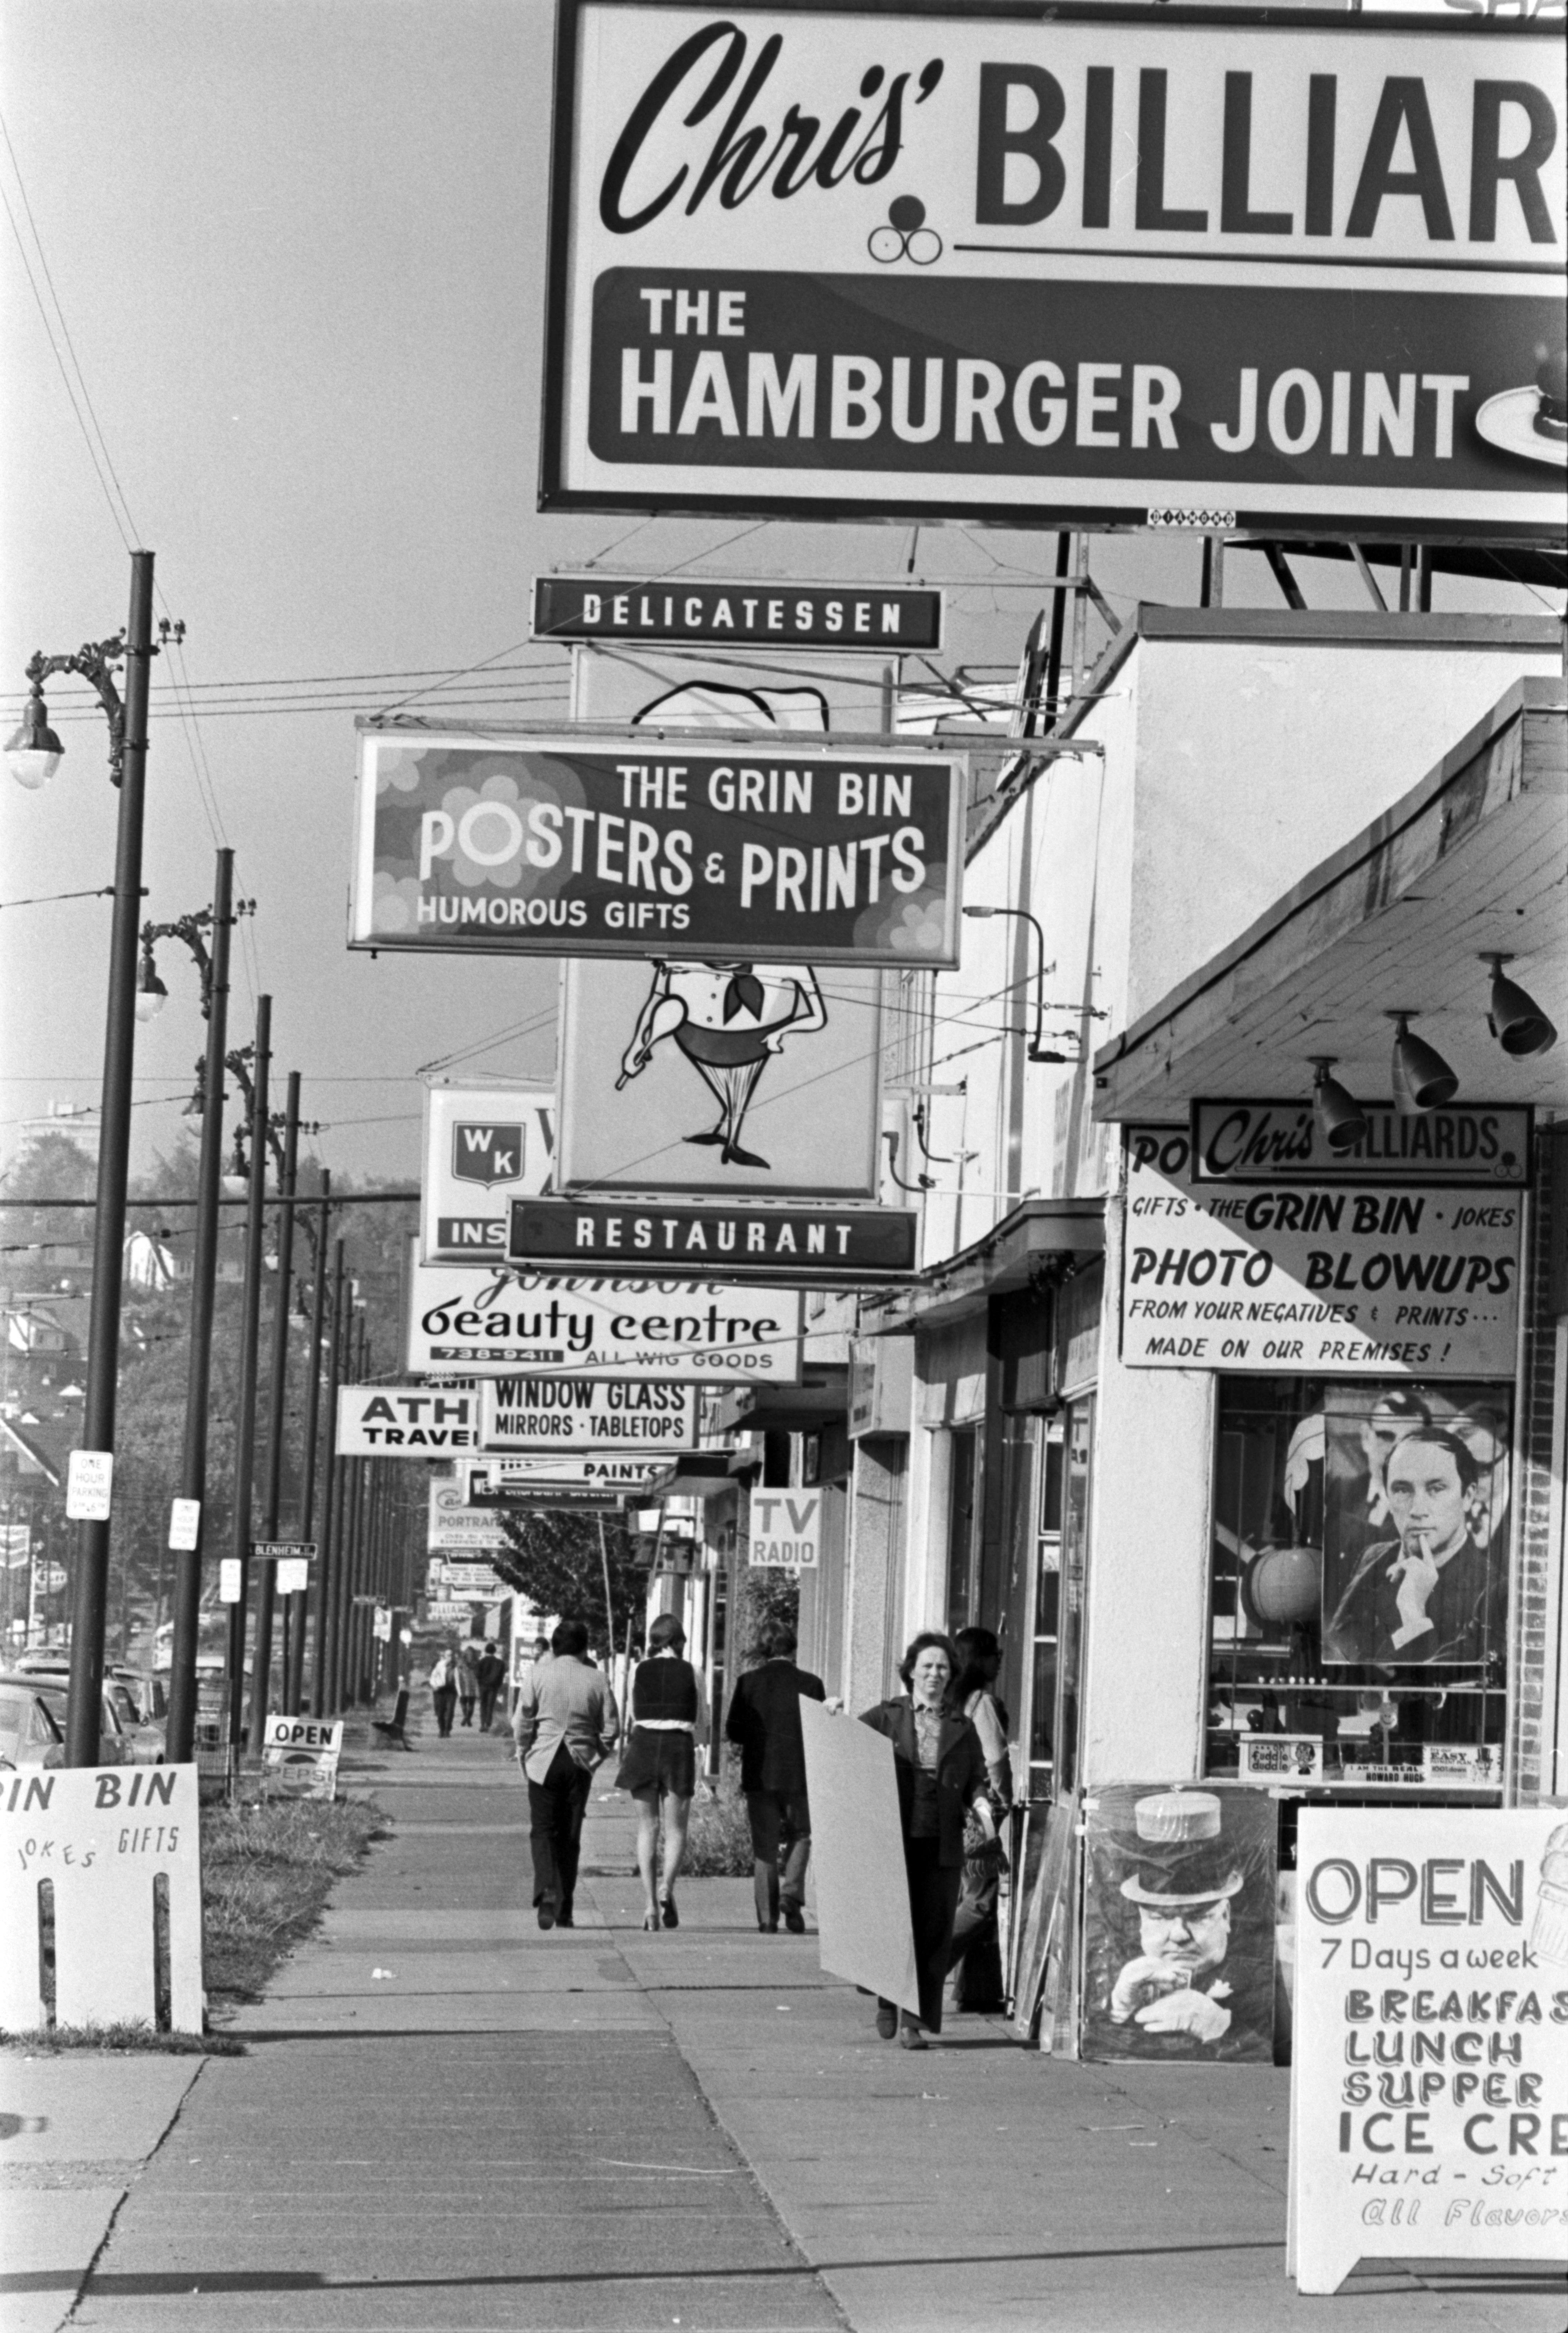 Broadway Street, between Trafalgar Street and Blenheim. The Grin Bin posters and prints, Chris' Billiards, The Hamburger Joint. October 5, 1972. Steve Bosch/Vancouver Sun (72-3291)